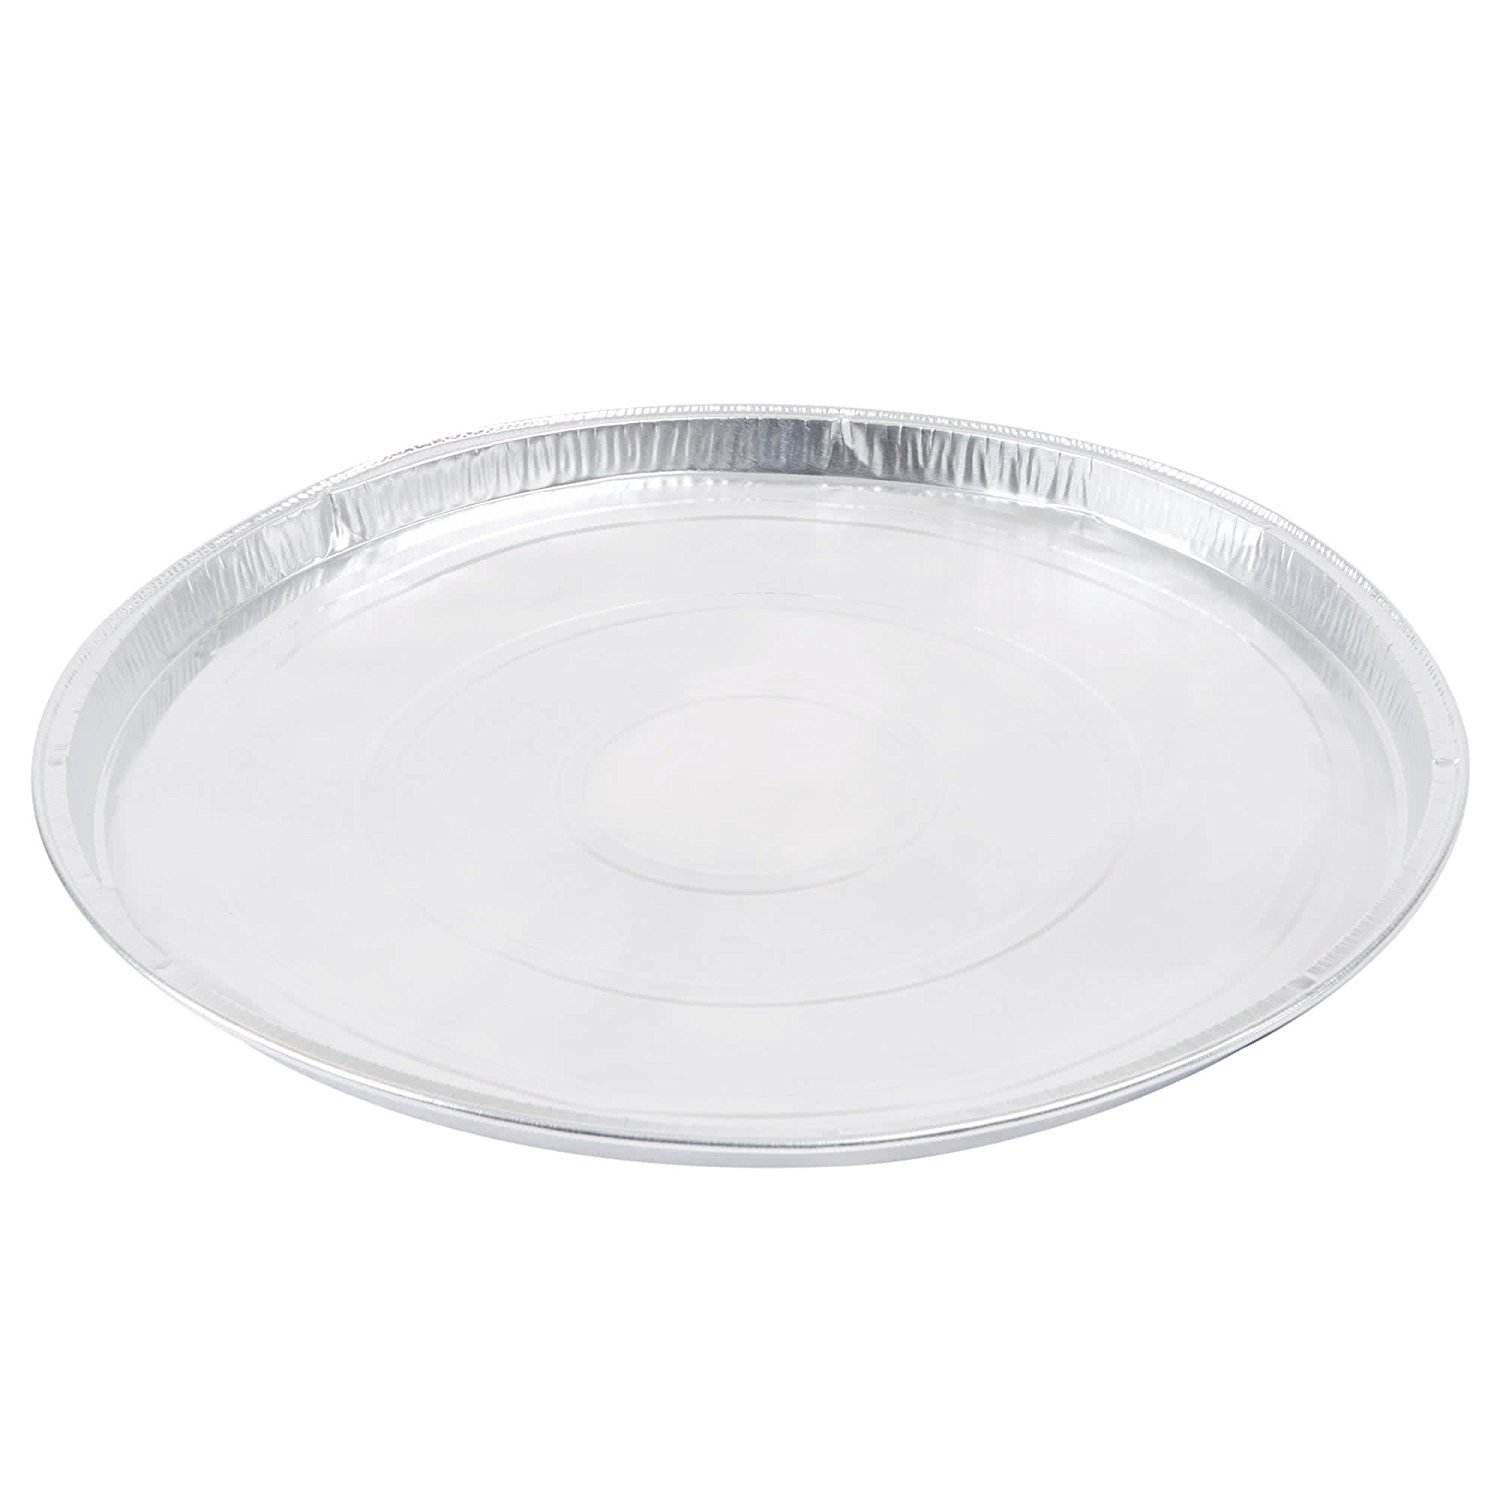 25-Pack, 11-Inch Round Flat Aluminum Foil Pan for Pizza, Large Cookie, or Pancakes 11